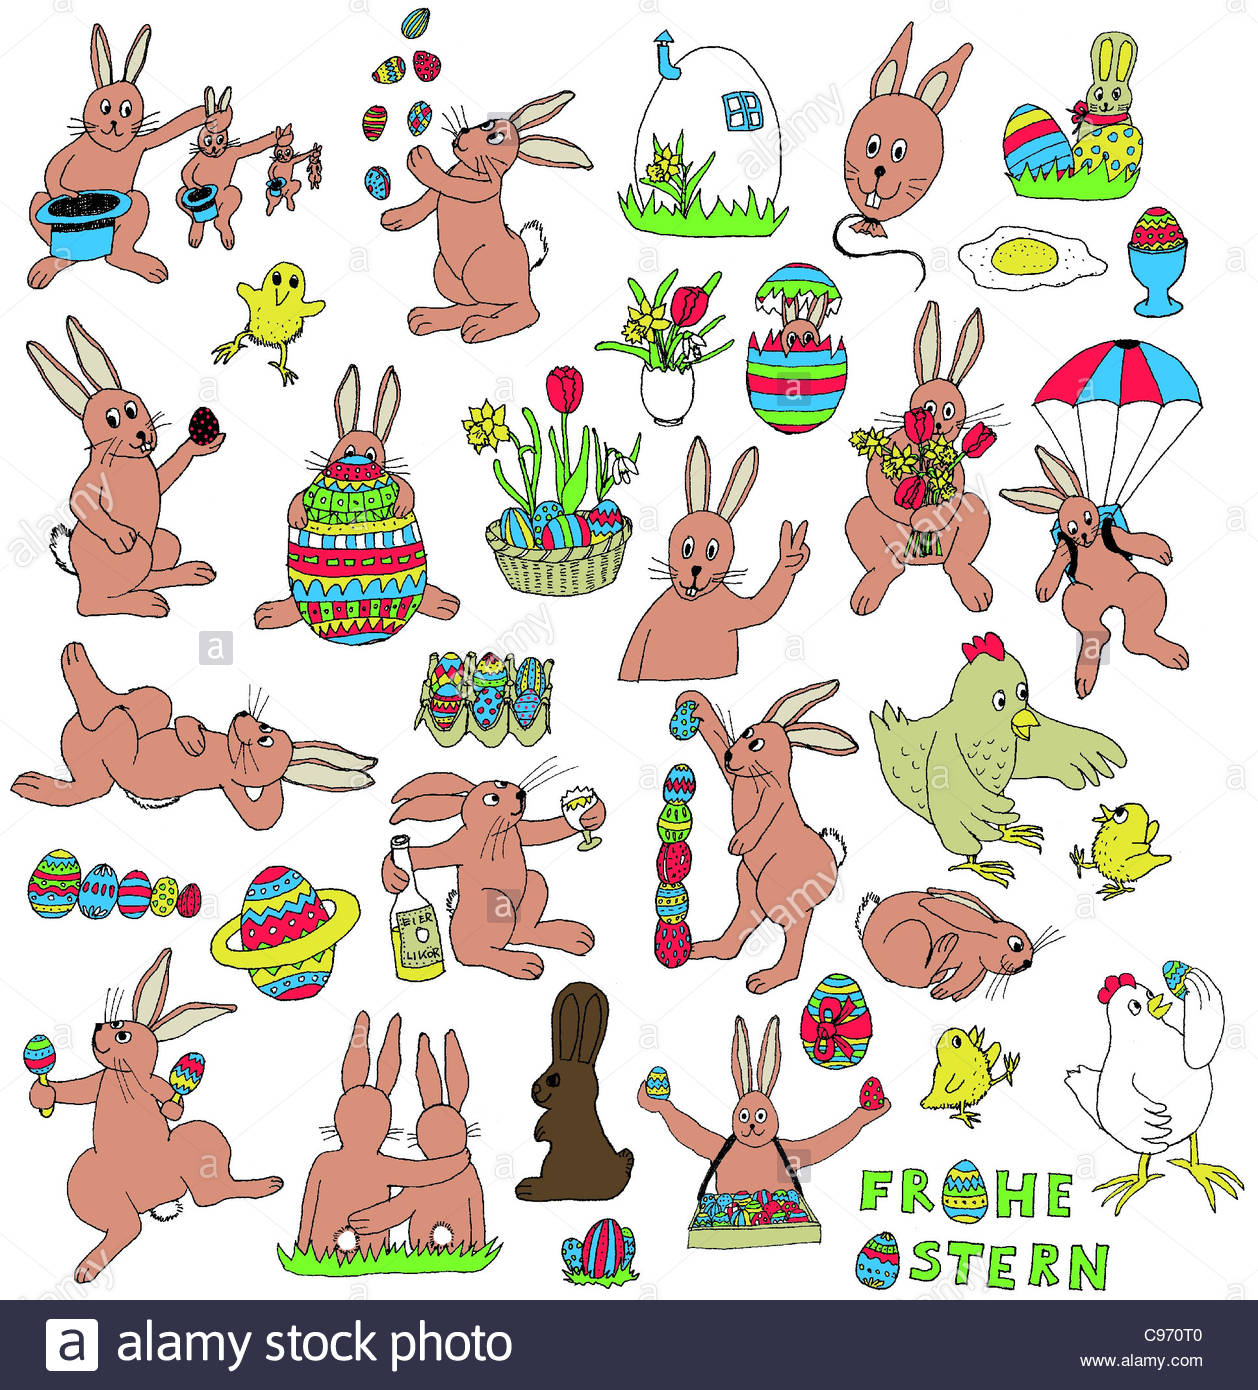 Easter Bunny Embroidery Designs Easter Bunny Stickers Stickers Embroidery D